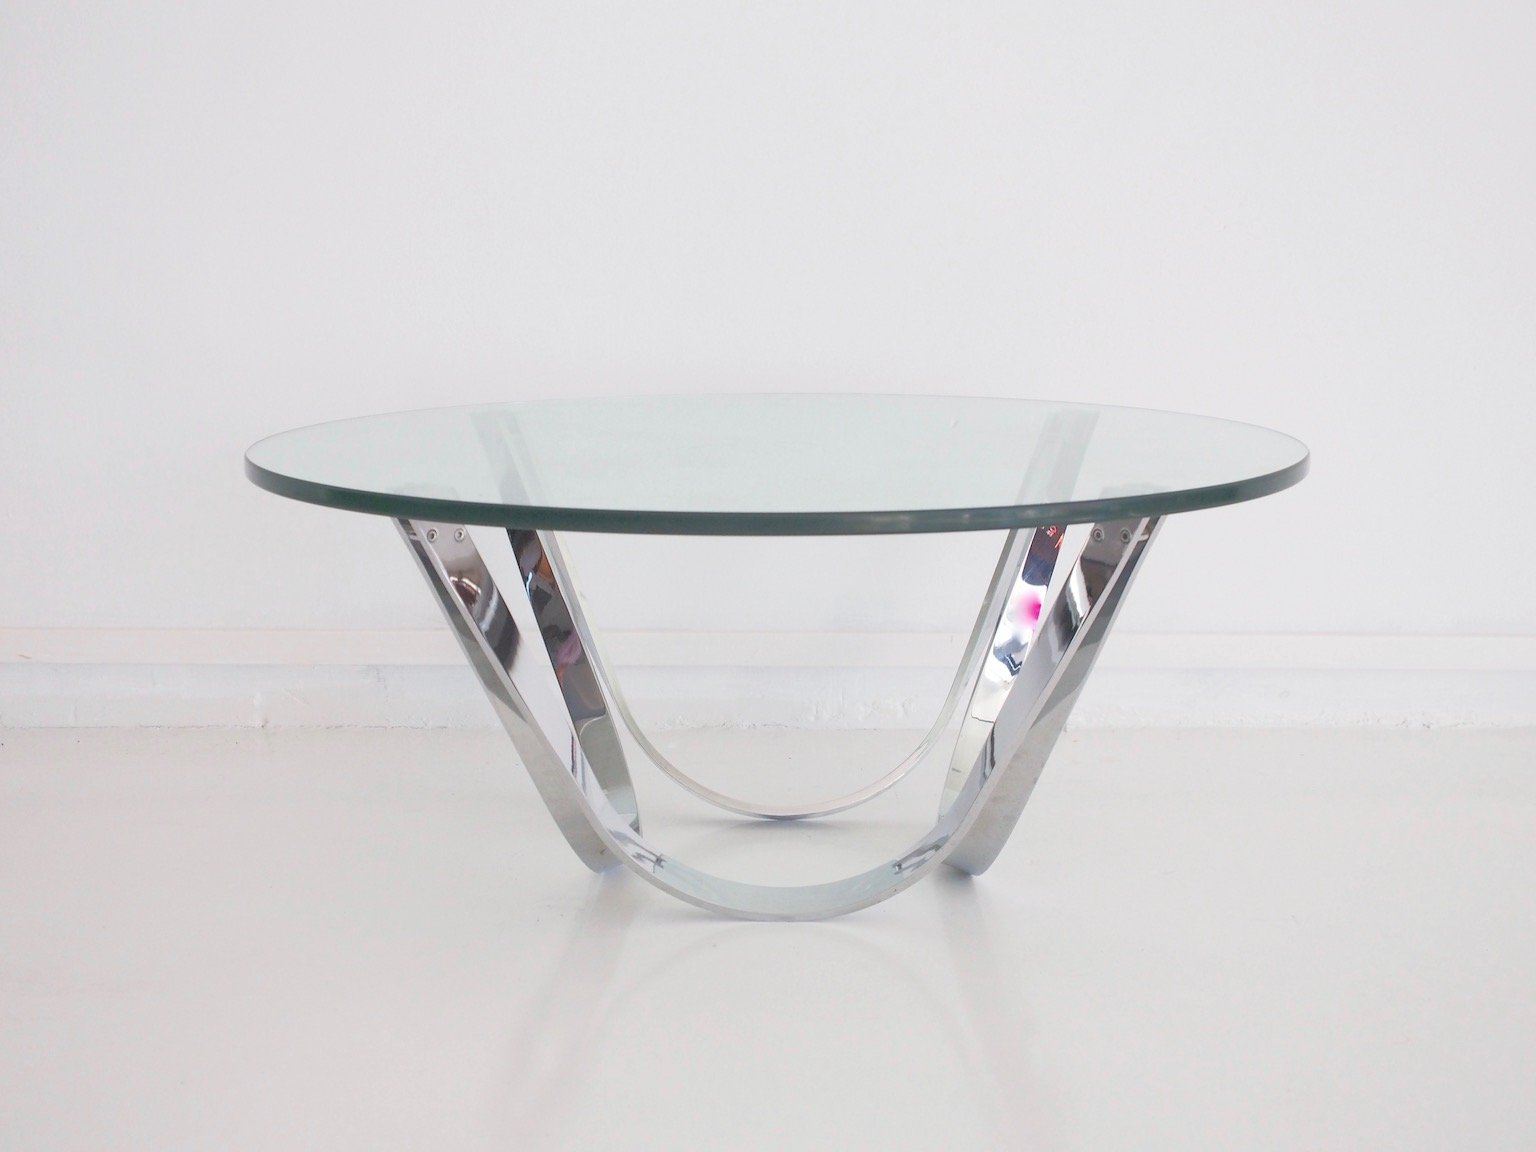 vintage chrome and glass coffee table by roger sprunger for dunbar  - vintage chrome and glass coffee table by roger sprunger for dunbarfurniture  previous